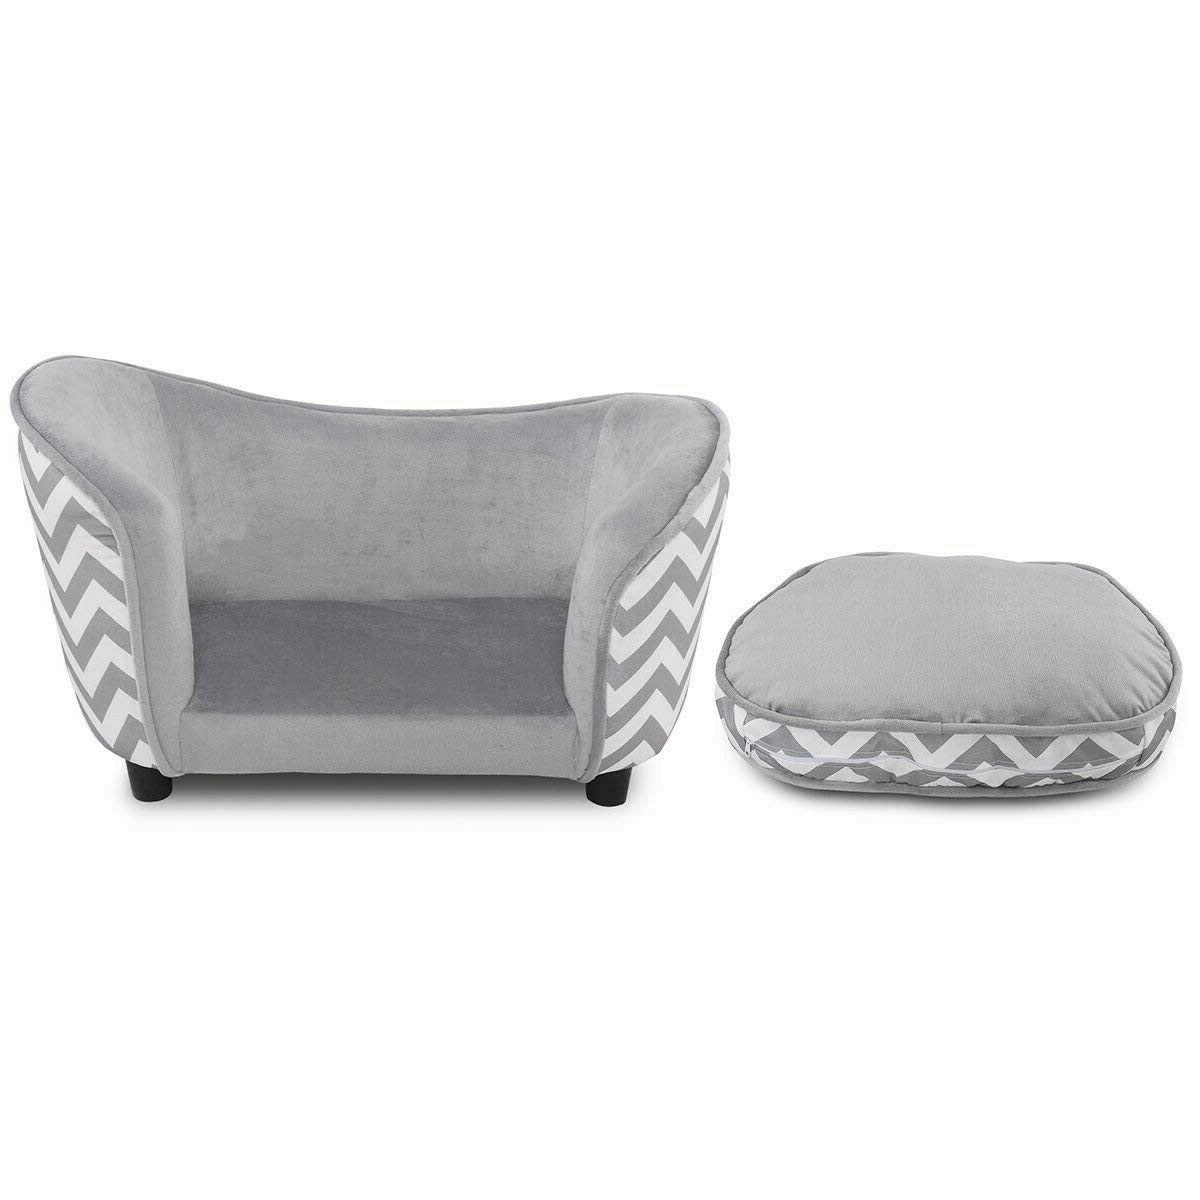 Small Beds Sofa Sleeping Furniture Cushion Gray